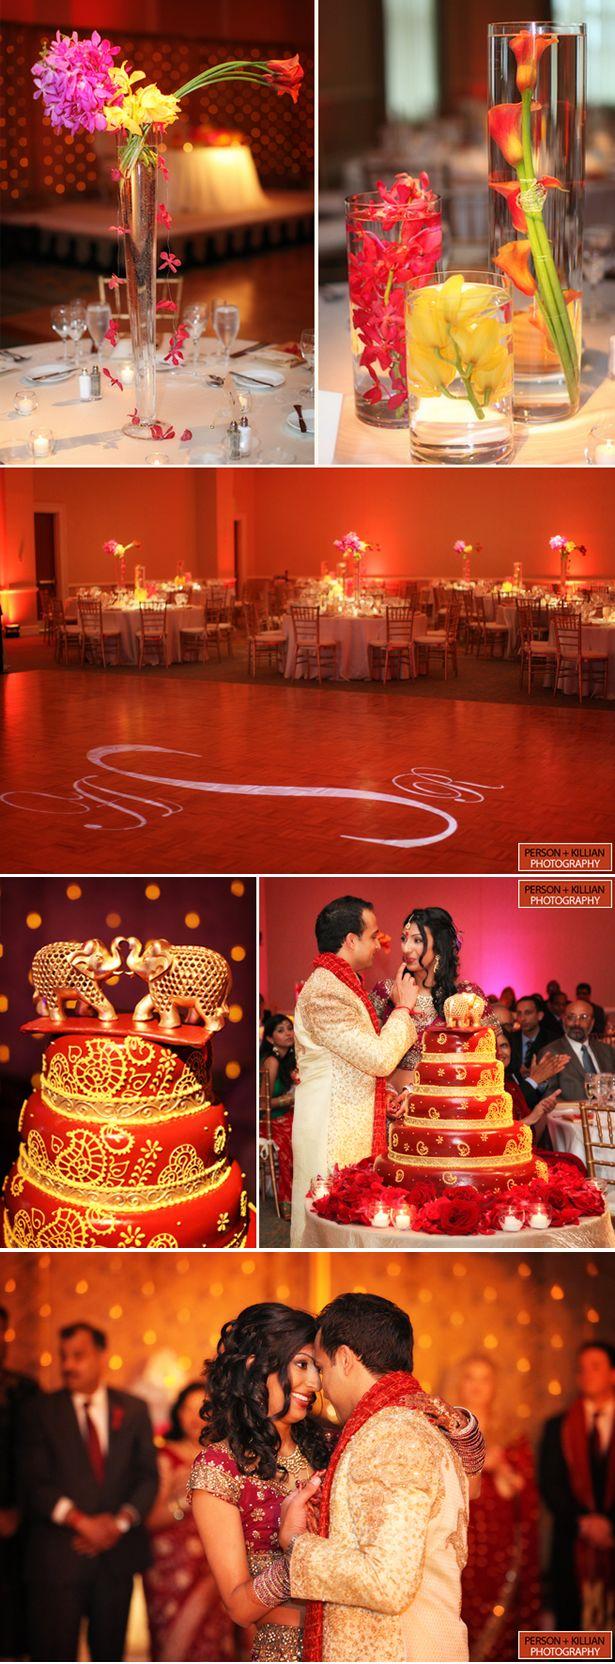 A vibrant wedding celebration inspired by rich Indian tradition and culture in Bostom, MA {Person + Killian Photography}